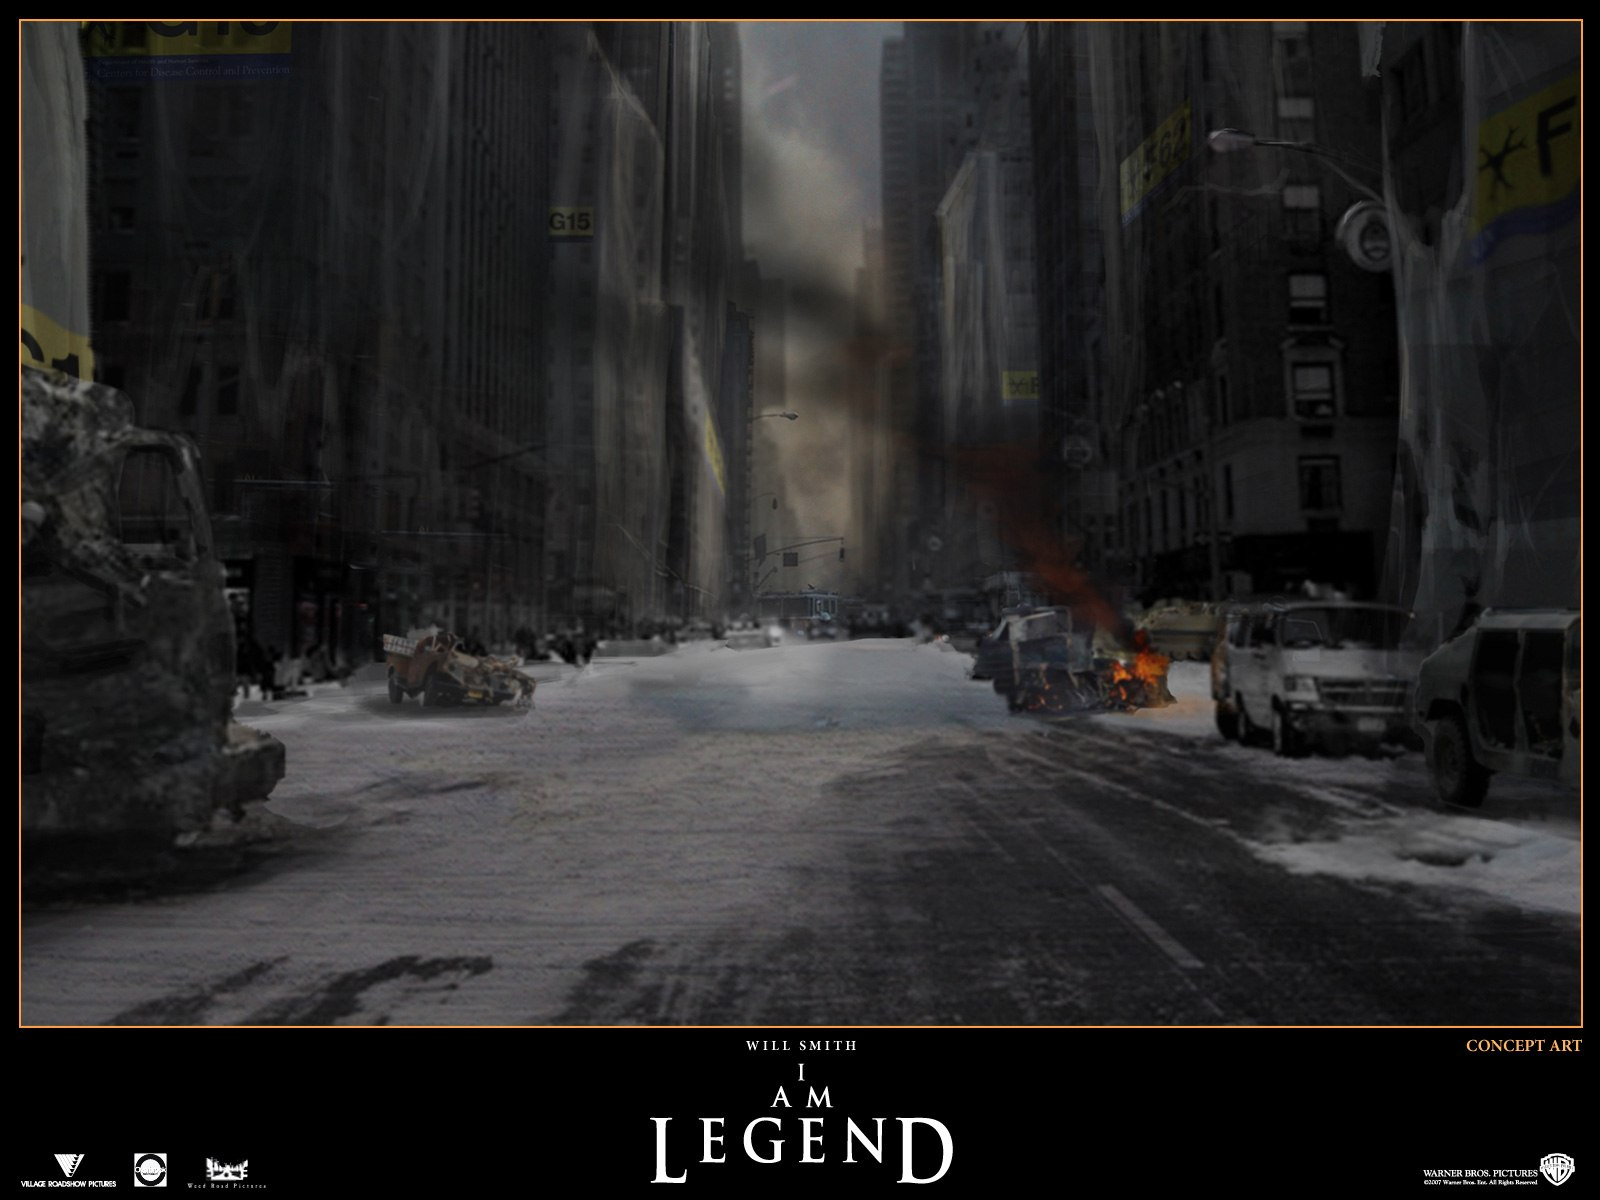 I Am Legend images Concept Art HD wallpaper and background 1600x1200